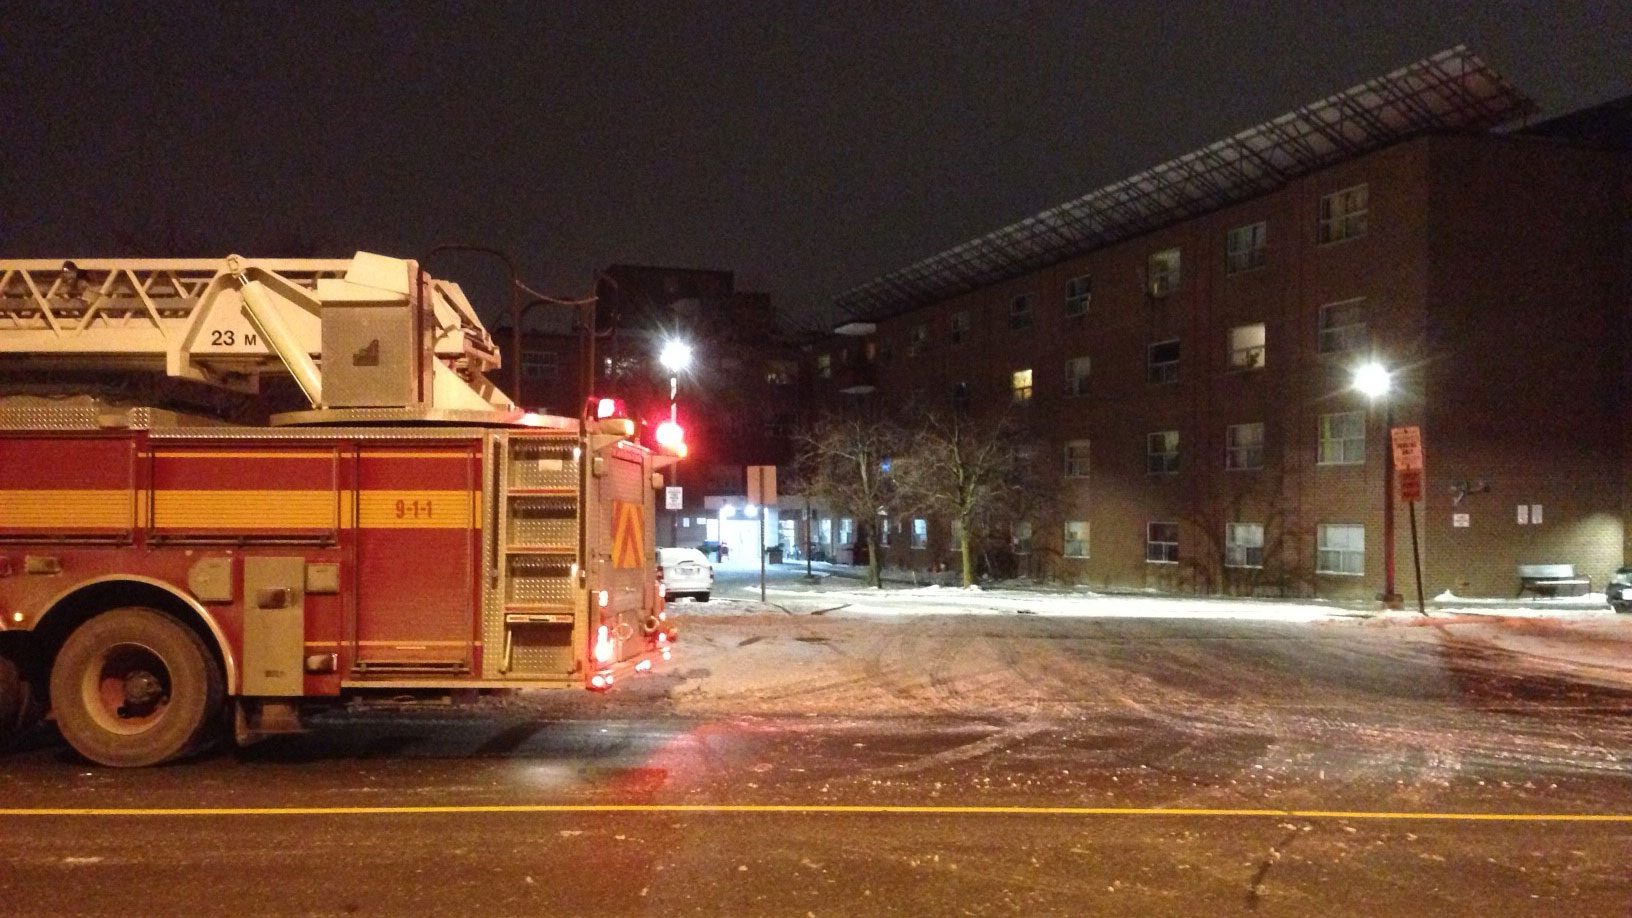 A two-alarm fire broke out at a Toronto Community Housing building on Arleta Avenue on March 15, 2017. CITYNEWS/Bertram Dandy